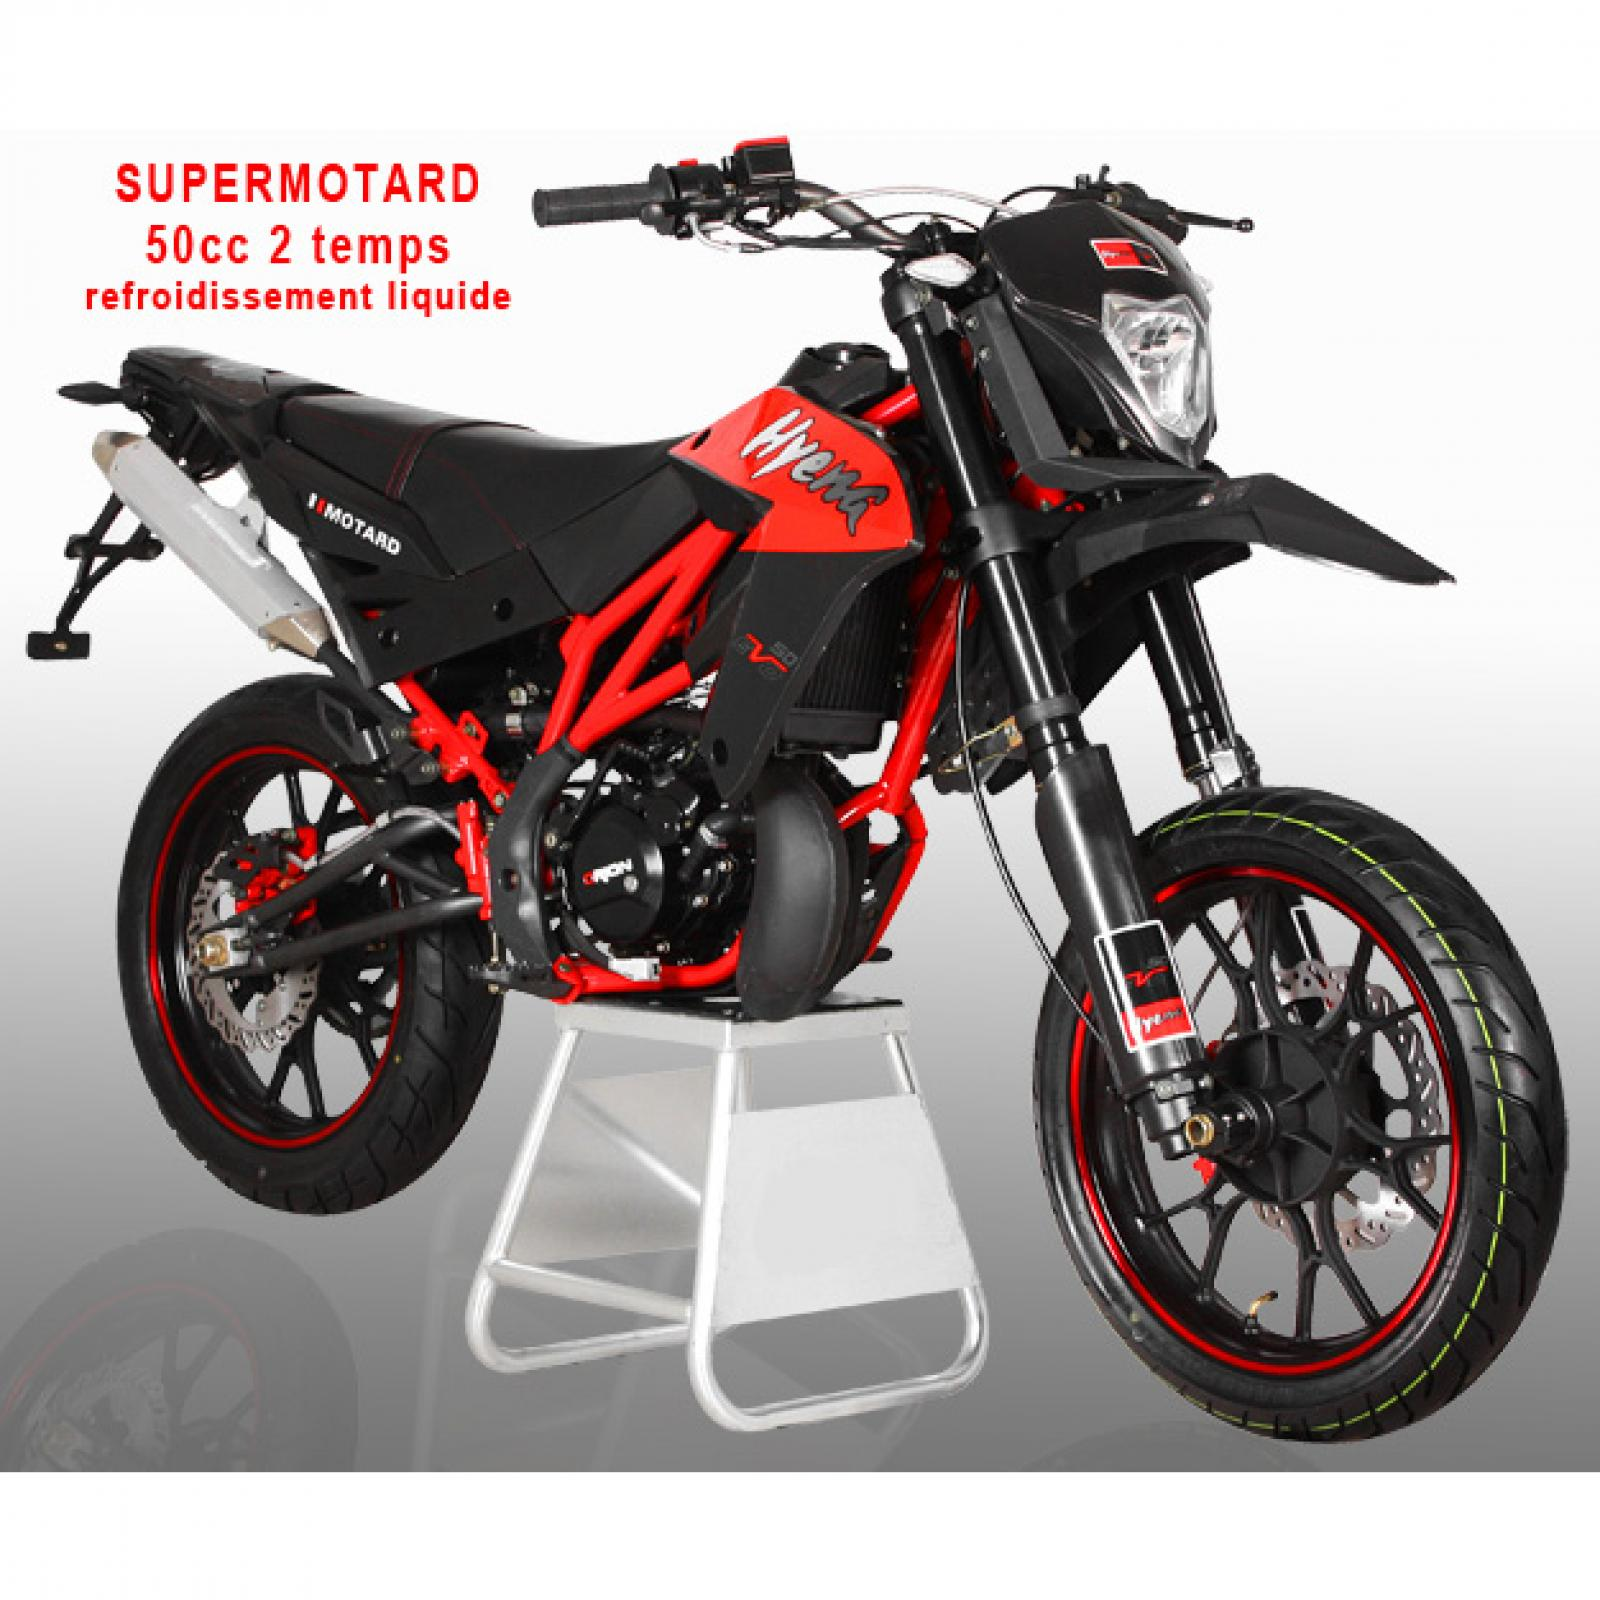 Sherco 2.9 Cabestany Replica images #158815